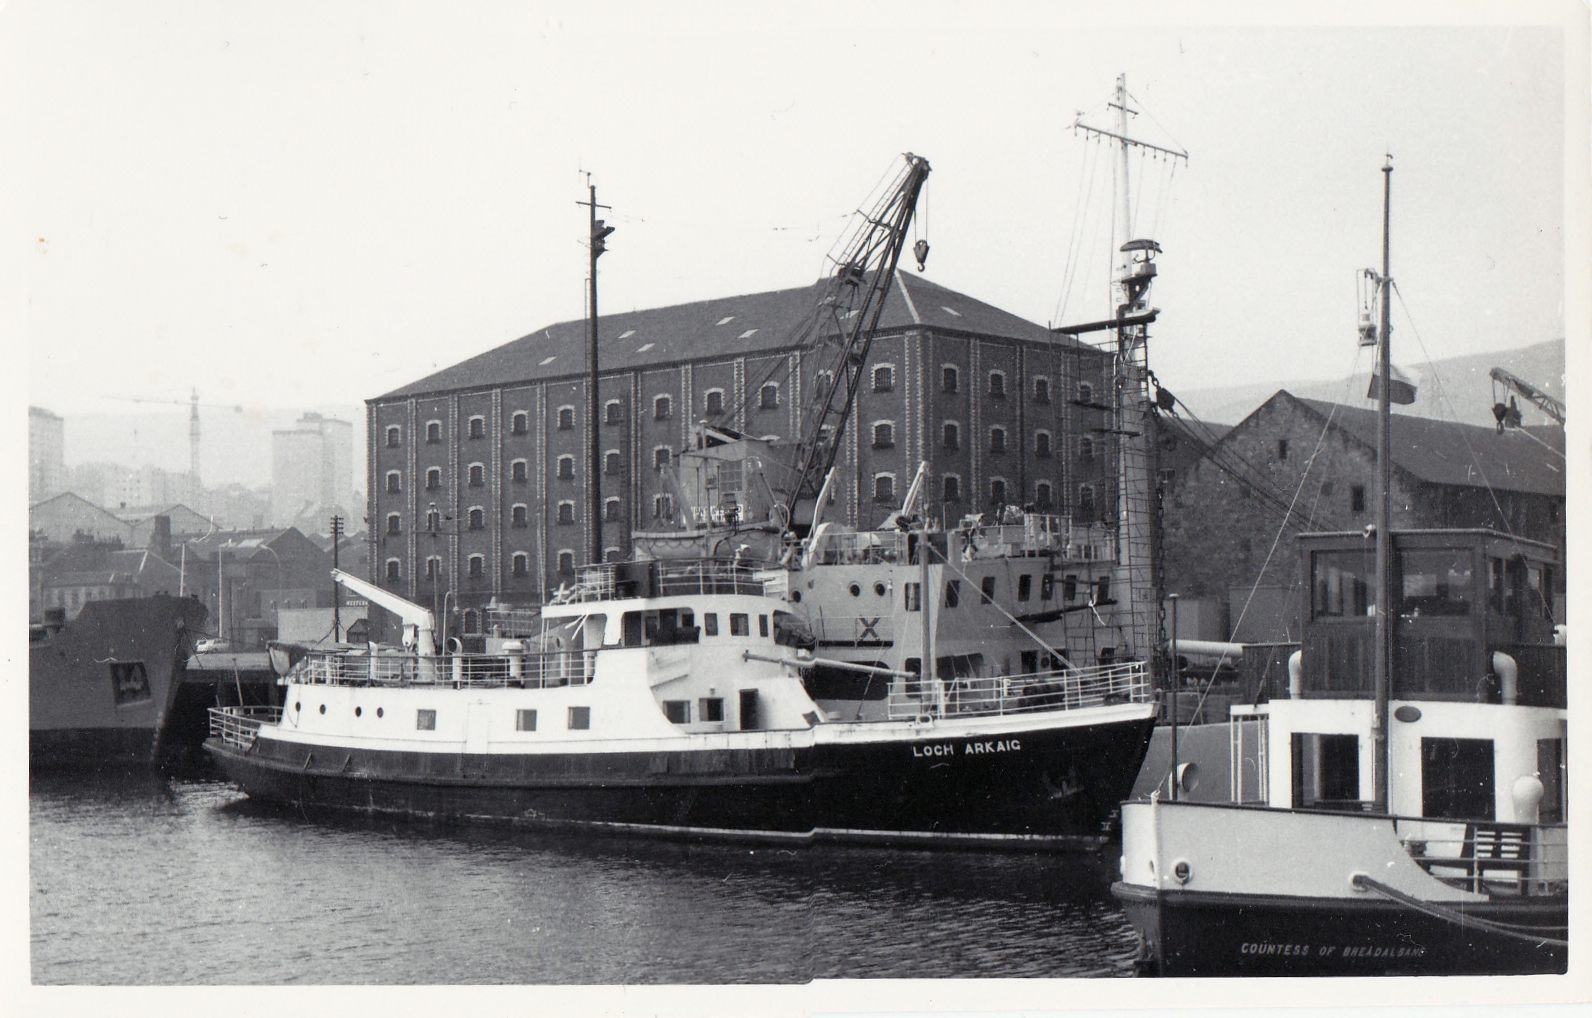 In the East India Harbour with Loch Arkaig